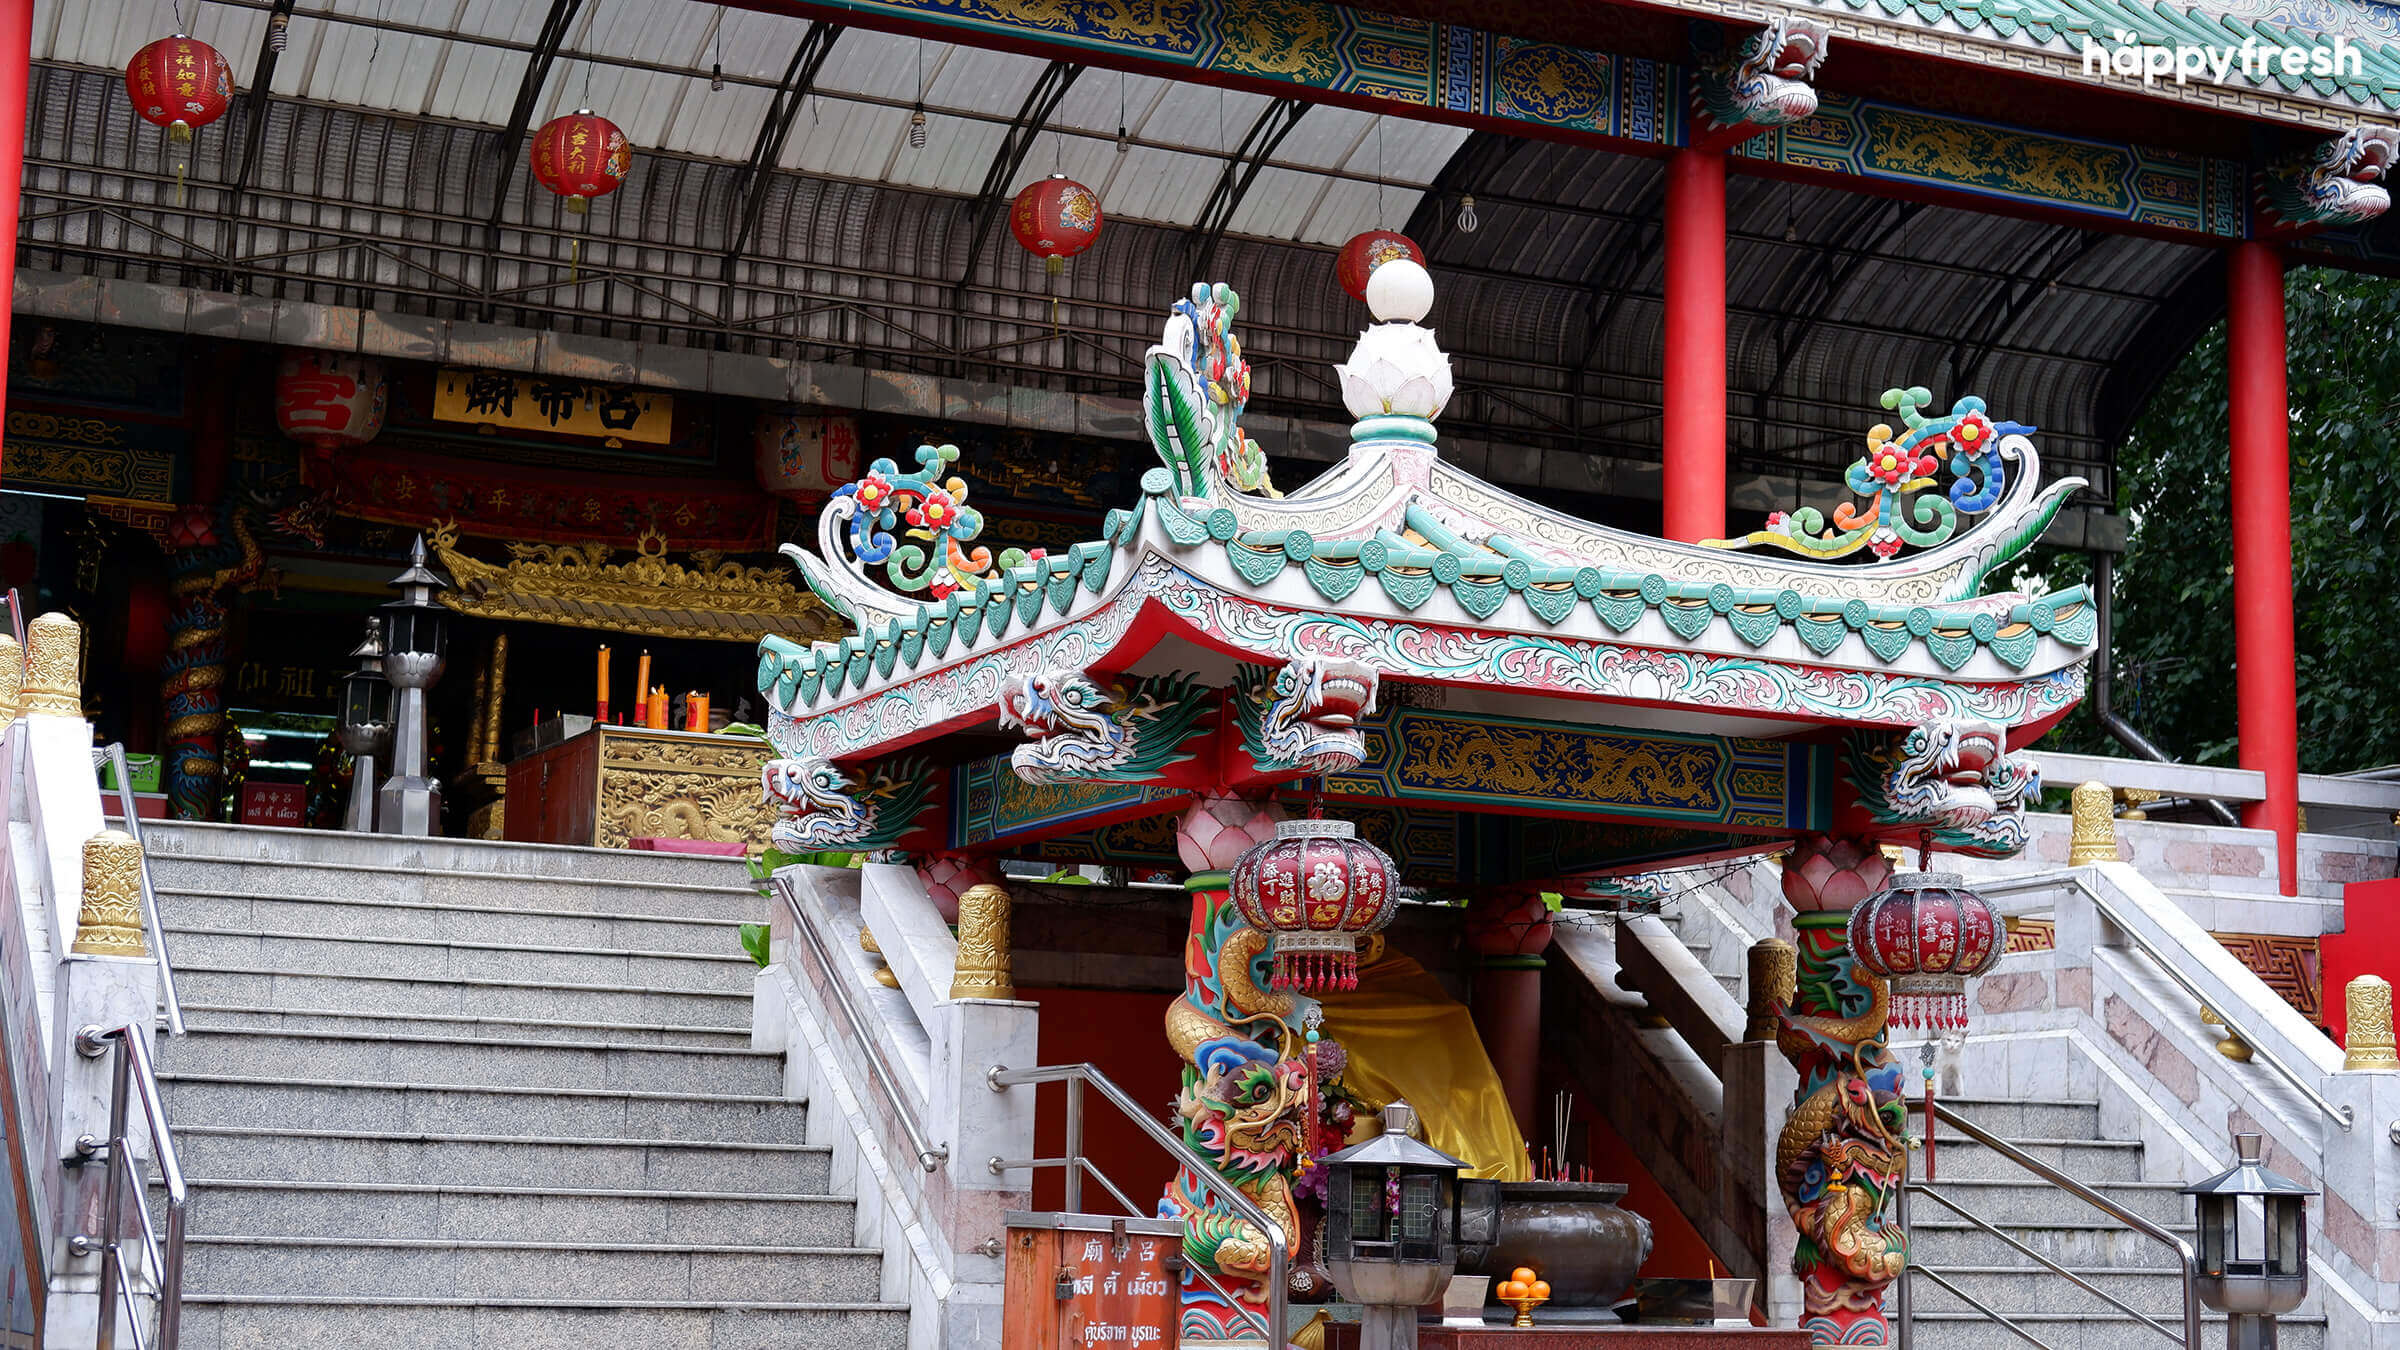 HappyFresh_Visit_6_Chinese_Shrines_In_Chinatown_Lee_Ti_Miew_Shrine